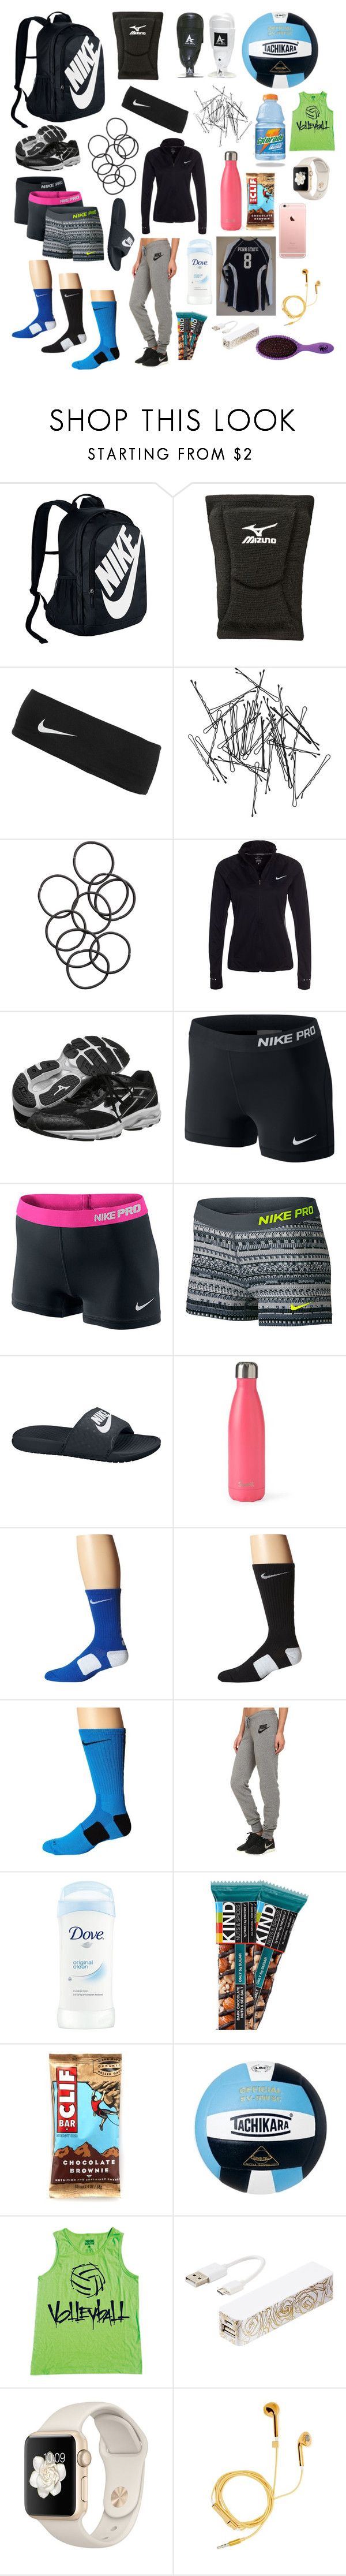 """What's in my volleyball bag"" by southernannabelle on Polyvore featuring NIKE, Mizuno, Monki, H&M, S'well, Triple C Designs, PhunkeeTree and The Wet Brush"